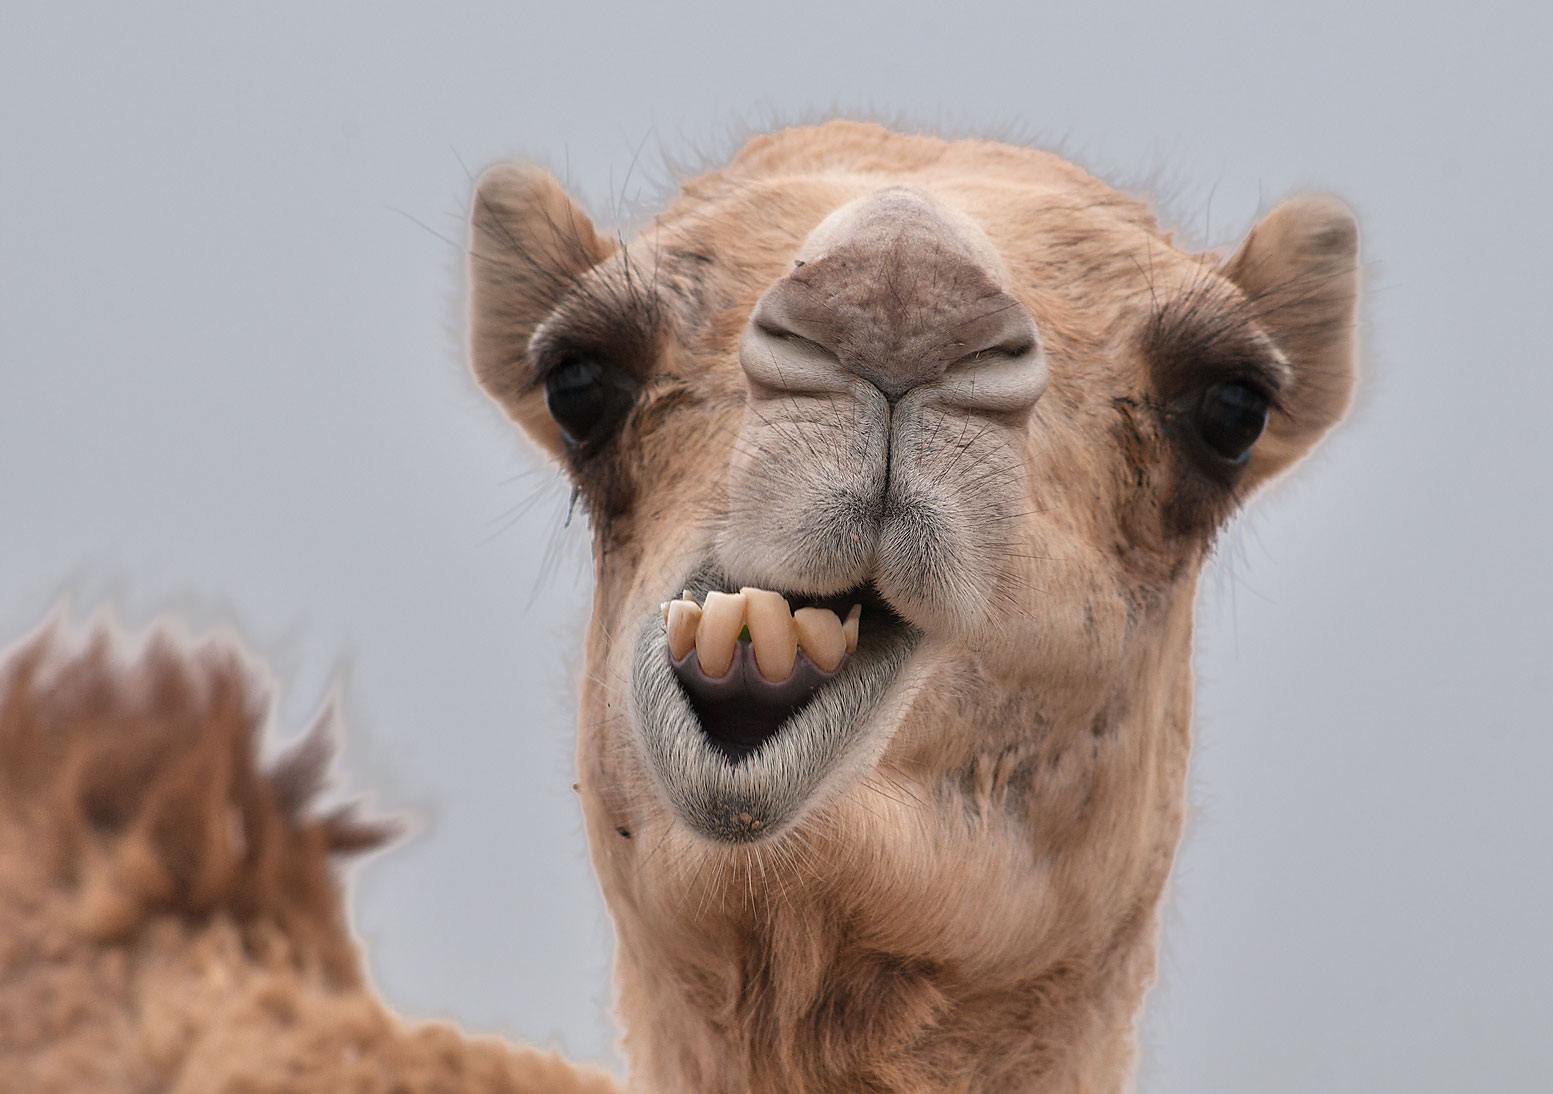 Tied in the Heat All Day, Angry Camel Bites off Owner's Head